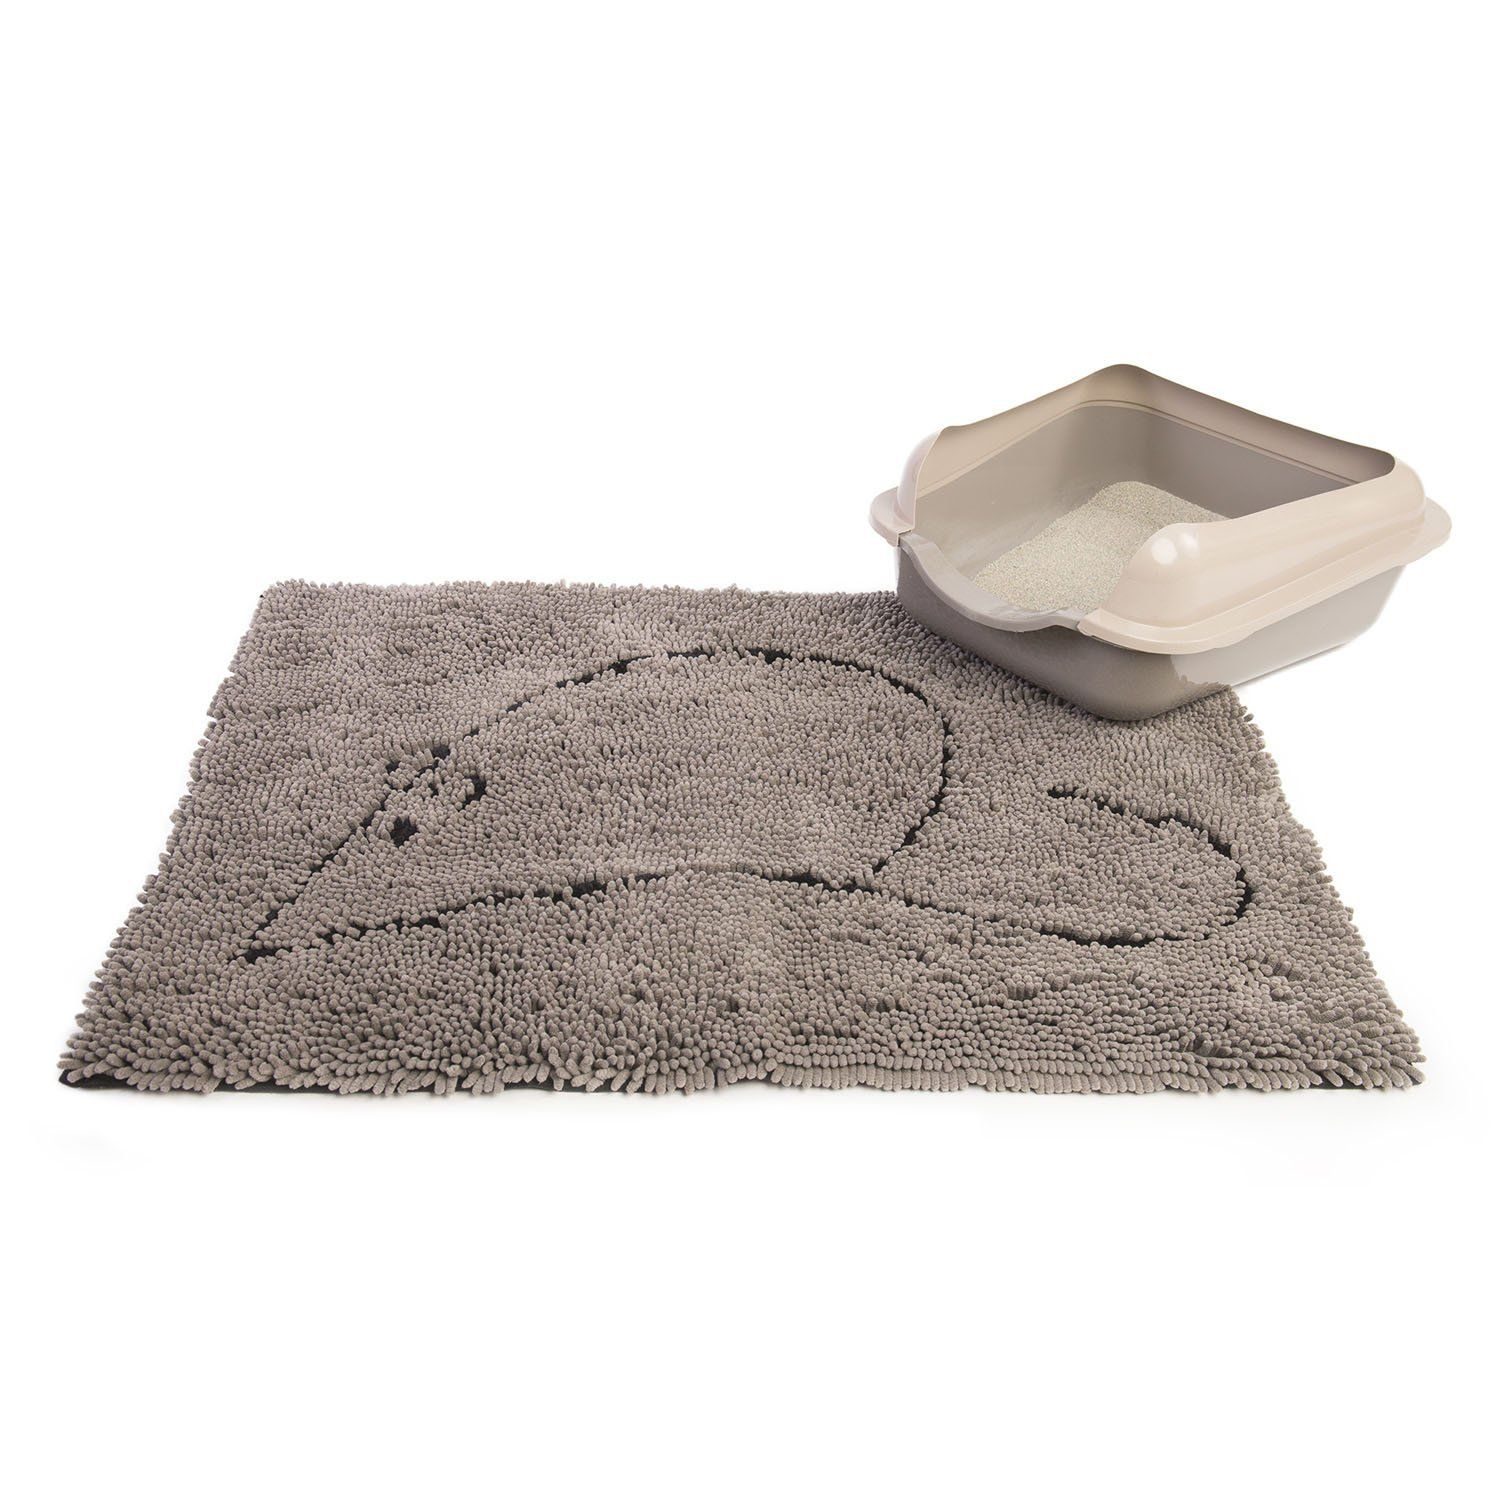 Dog Gone Smart Cat Litter Mat * Discover this special cat